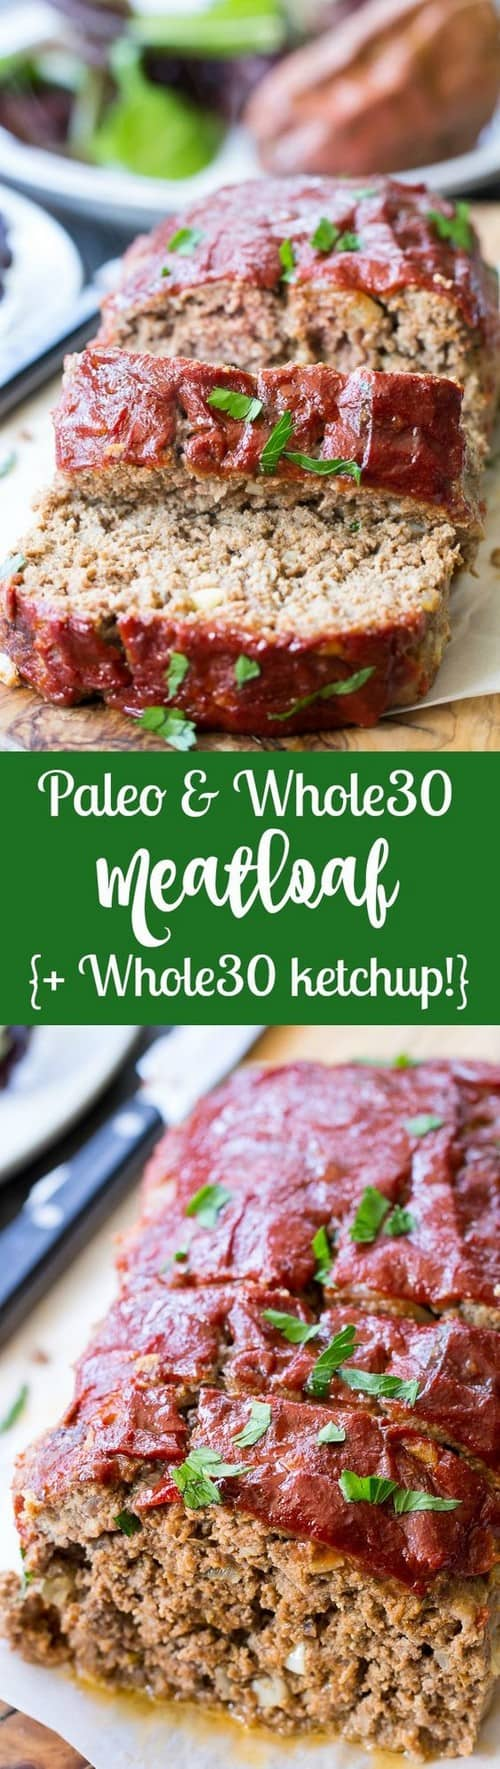 whole30-paleo-meatloaf-whole30-ketchup